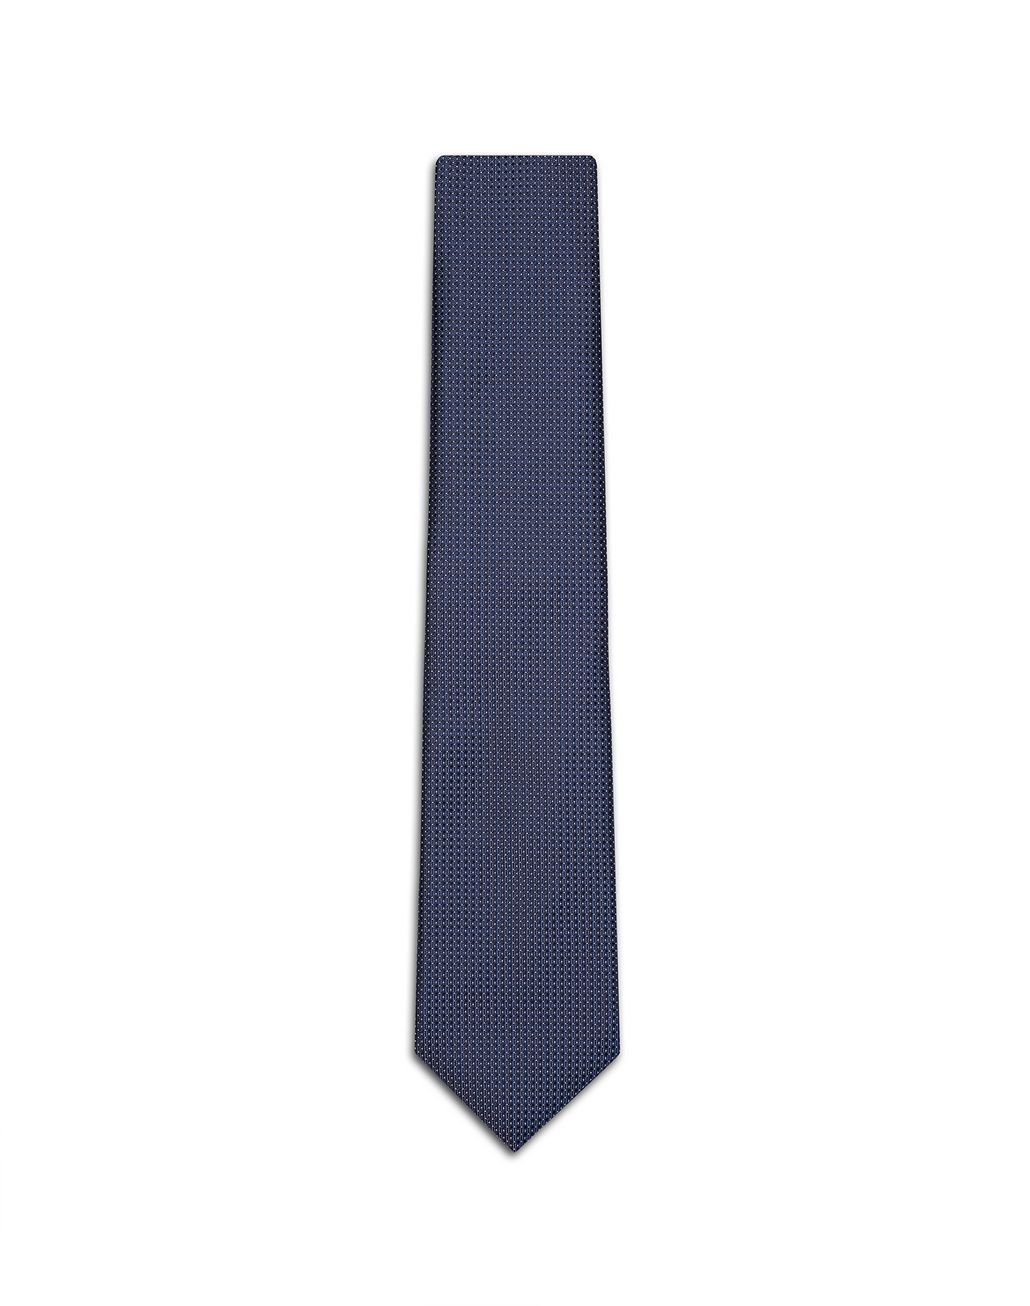 BRIONI Navy Blue and White Dotted Tie Tie Man f